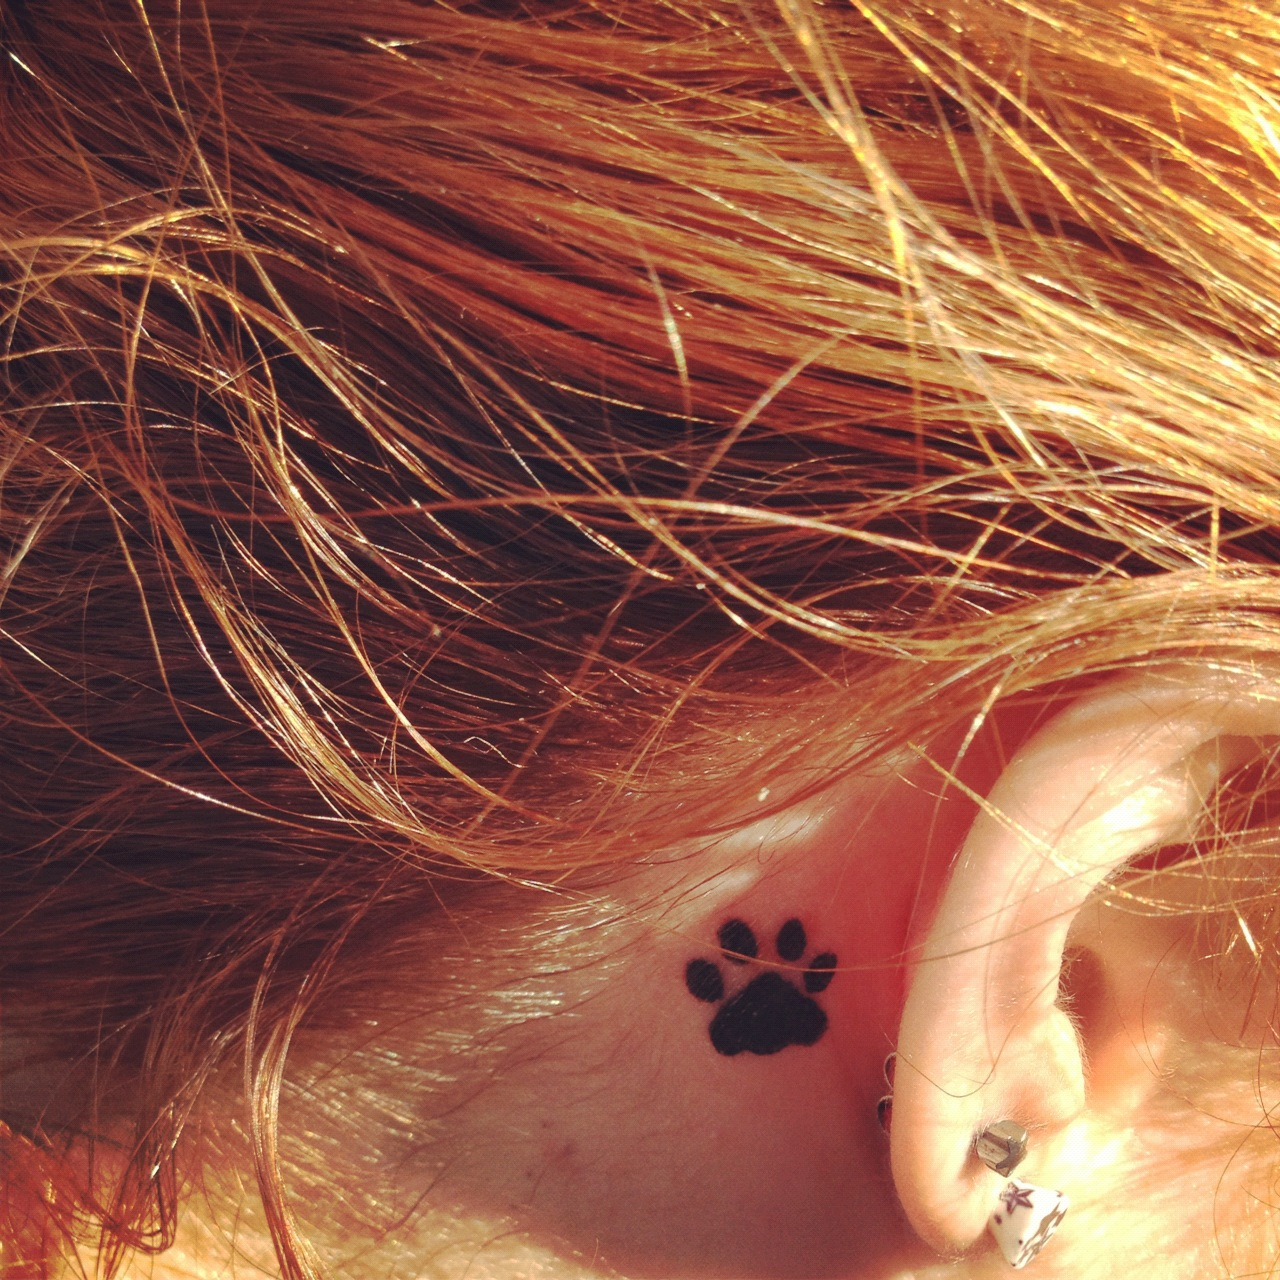 17 Leopard Paw Tattoo Images, Pictures And Photo Ideas